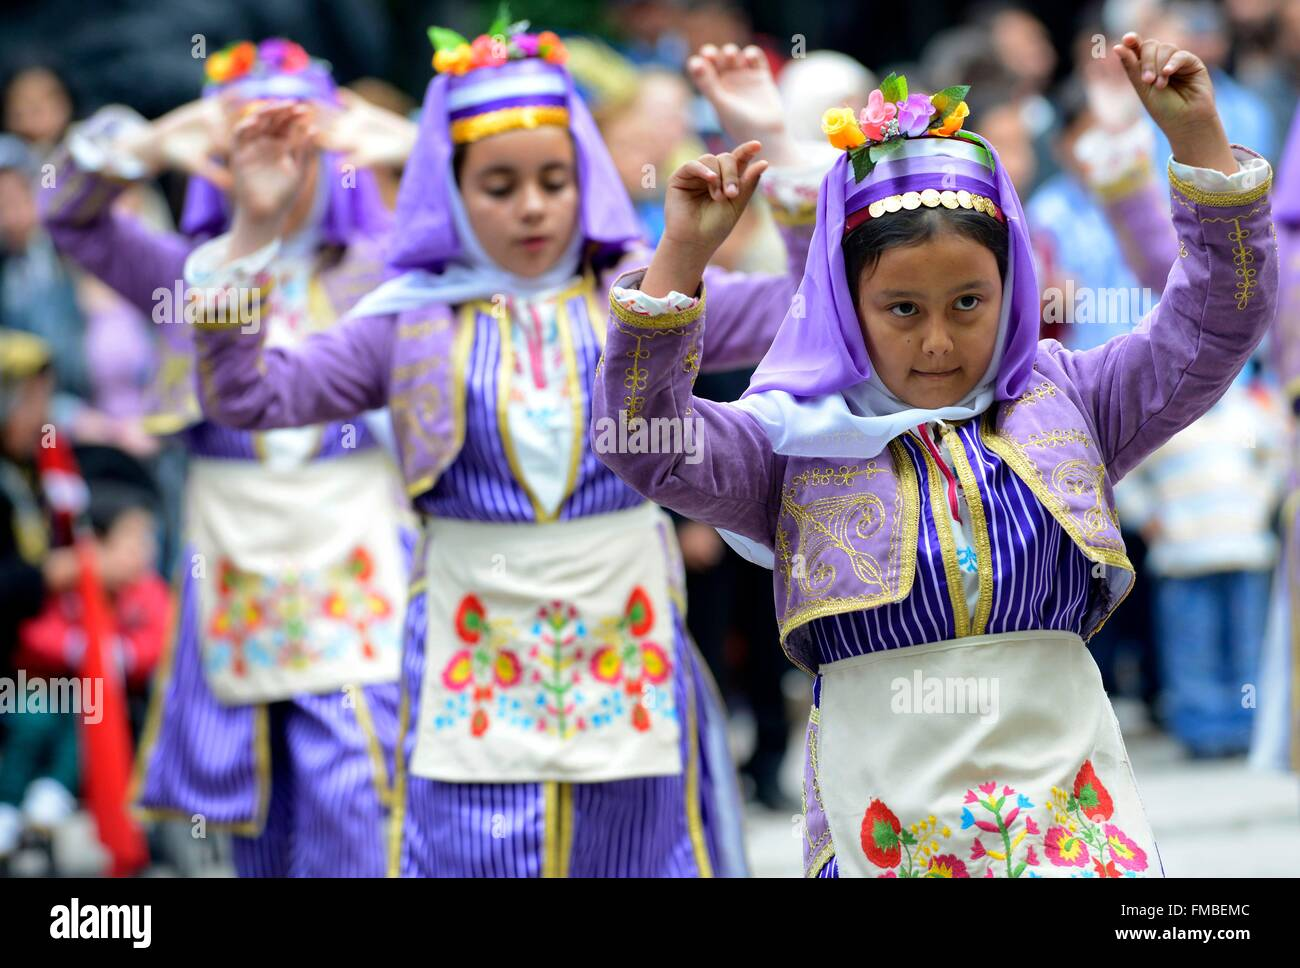 Turkey, Marmara region, Bandirma, kids during a traditional show on the occasion of the Turkish national day - Stock Image